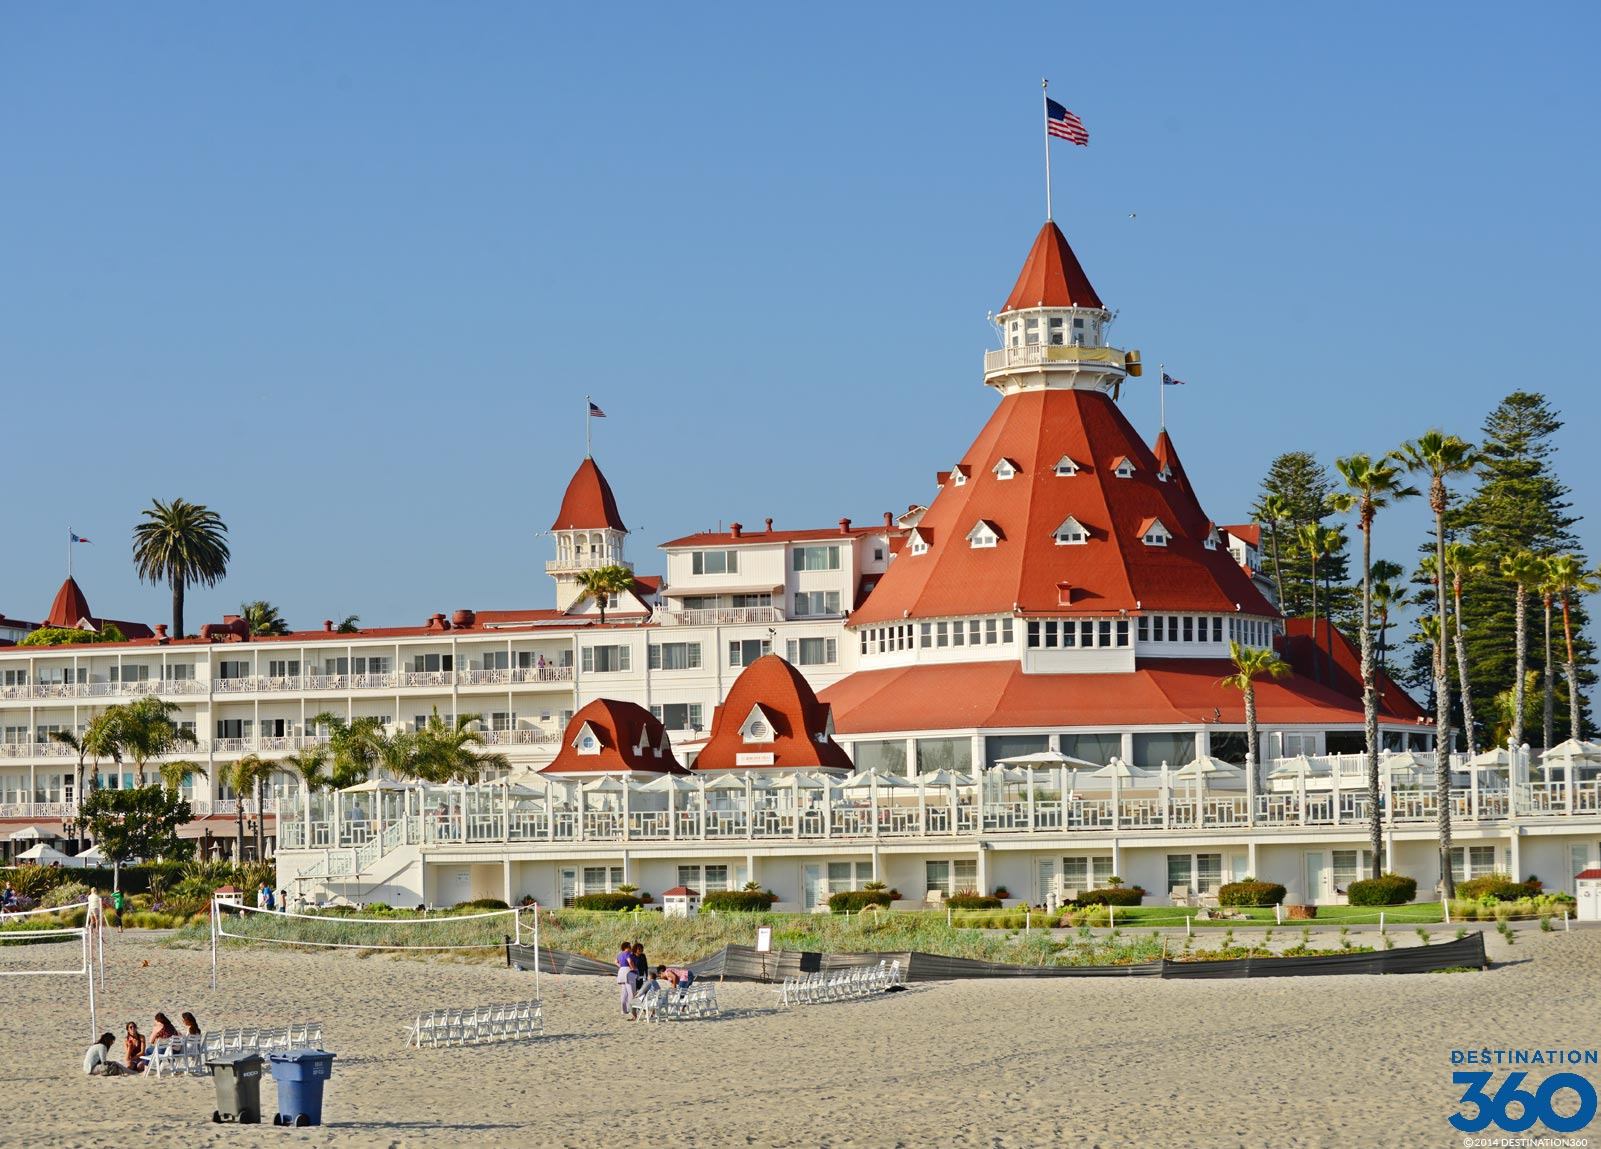 San Diego Beach Hotels - San Diego Hotels on the Beach